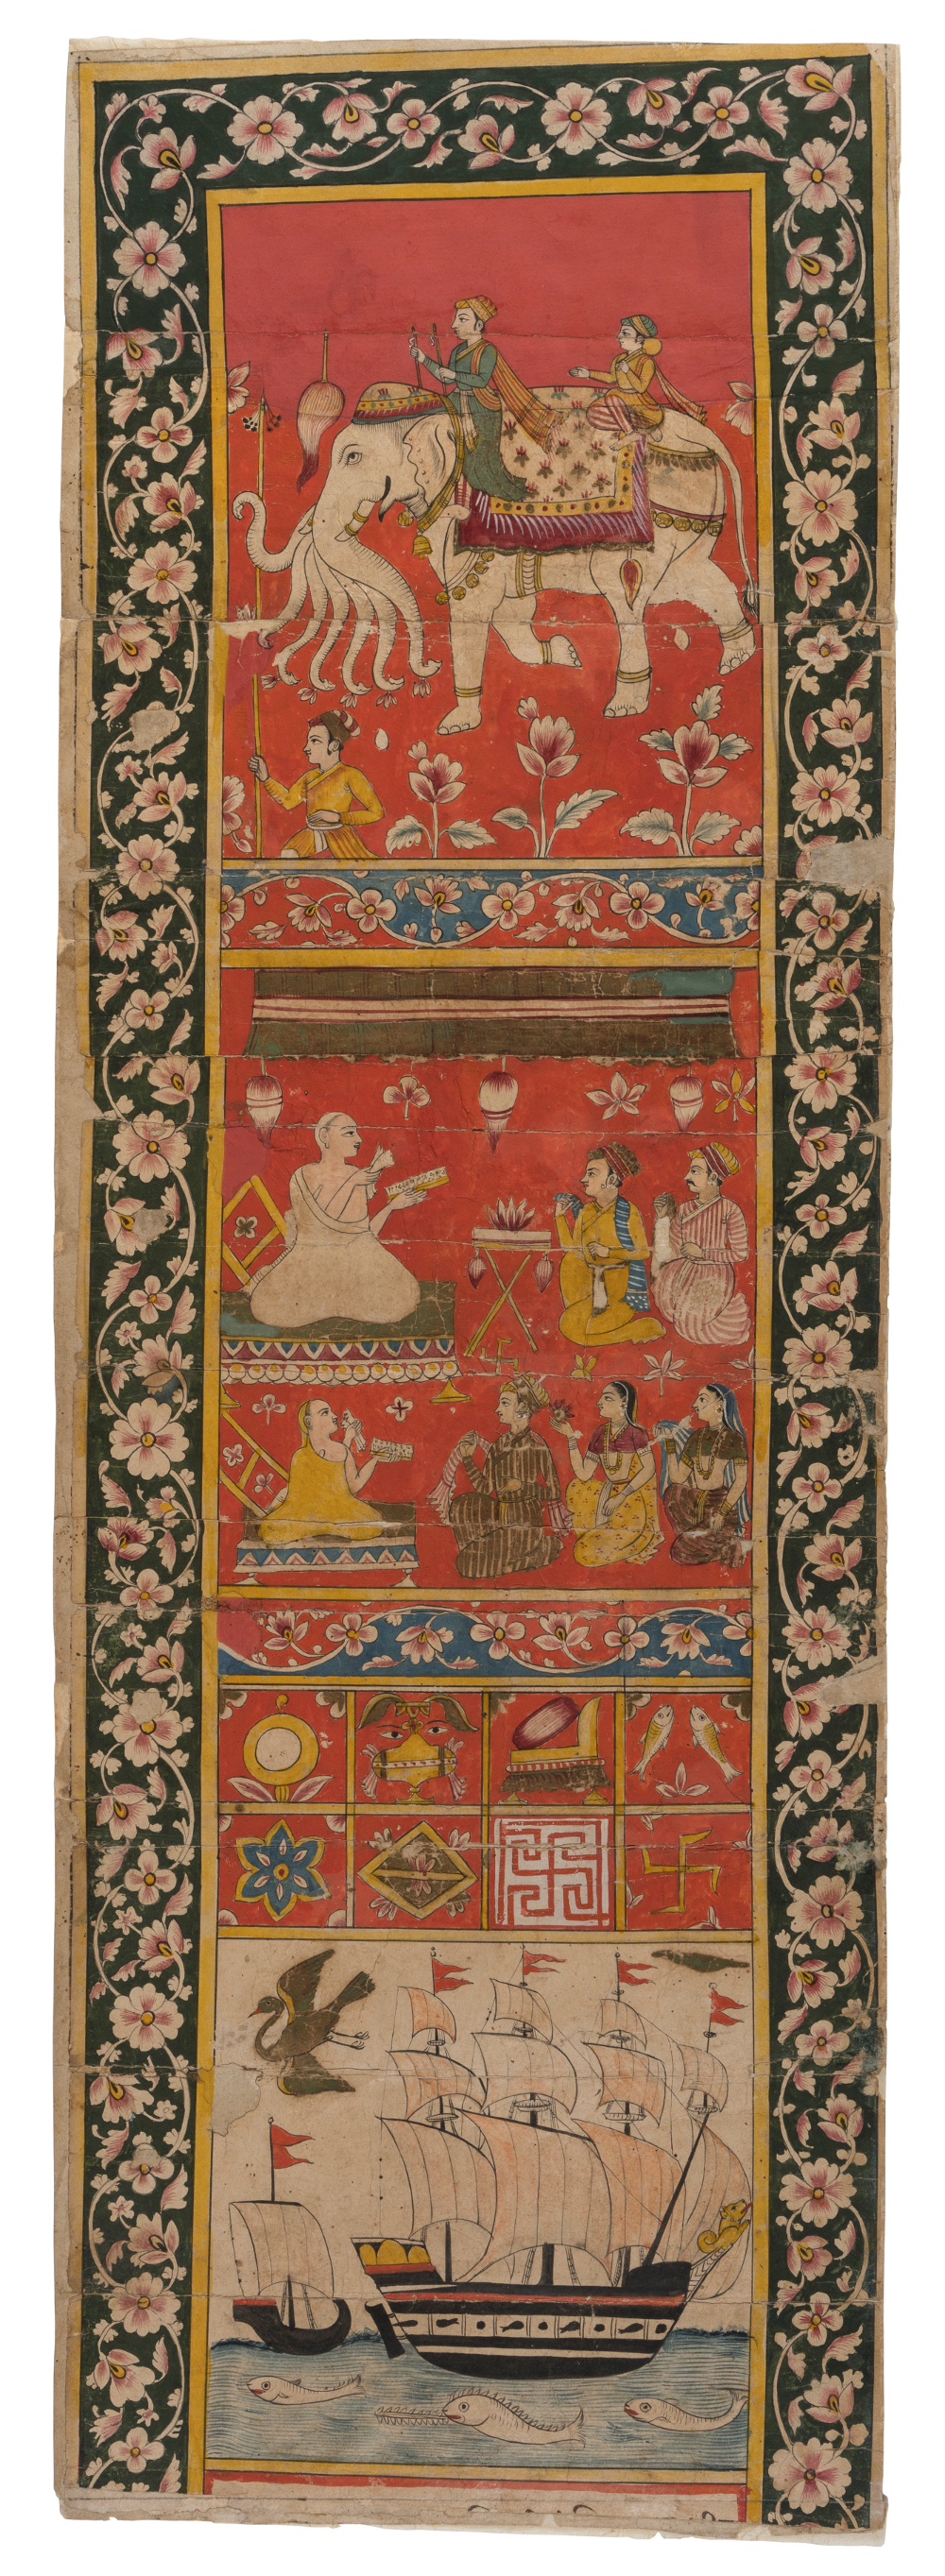 Vijnaptipatra - Painting on paperAbout AD 1600–1700Probably Surat, Gujarat, IndiaKarl and Meherbai Khandalavala Collection CSMVSVijnaptipatra were letters of invitation from Jain communities requesting saints to reside in their commune during the holy period of chaturmasa(four months). The text of these invitations was almost always preceded by illustrations that depicted sights such as marketplaces along the route, which the delegation of Jains carrying the invitation crossed. This particular vijnaptipatrashows European galleys indicating that the authors could have been residents of a port.Vijnaptipatra